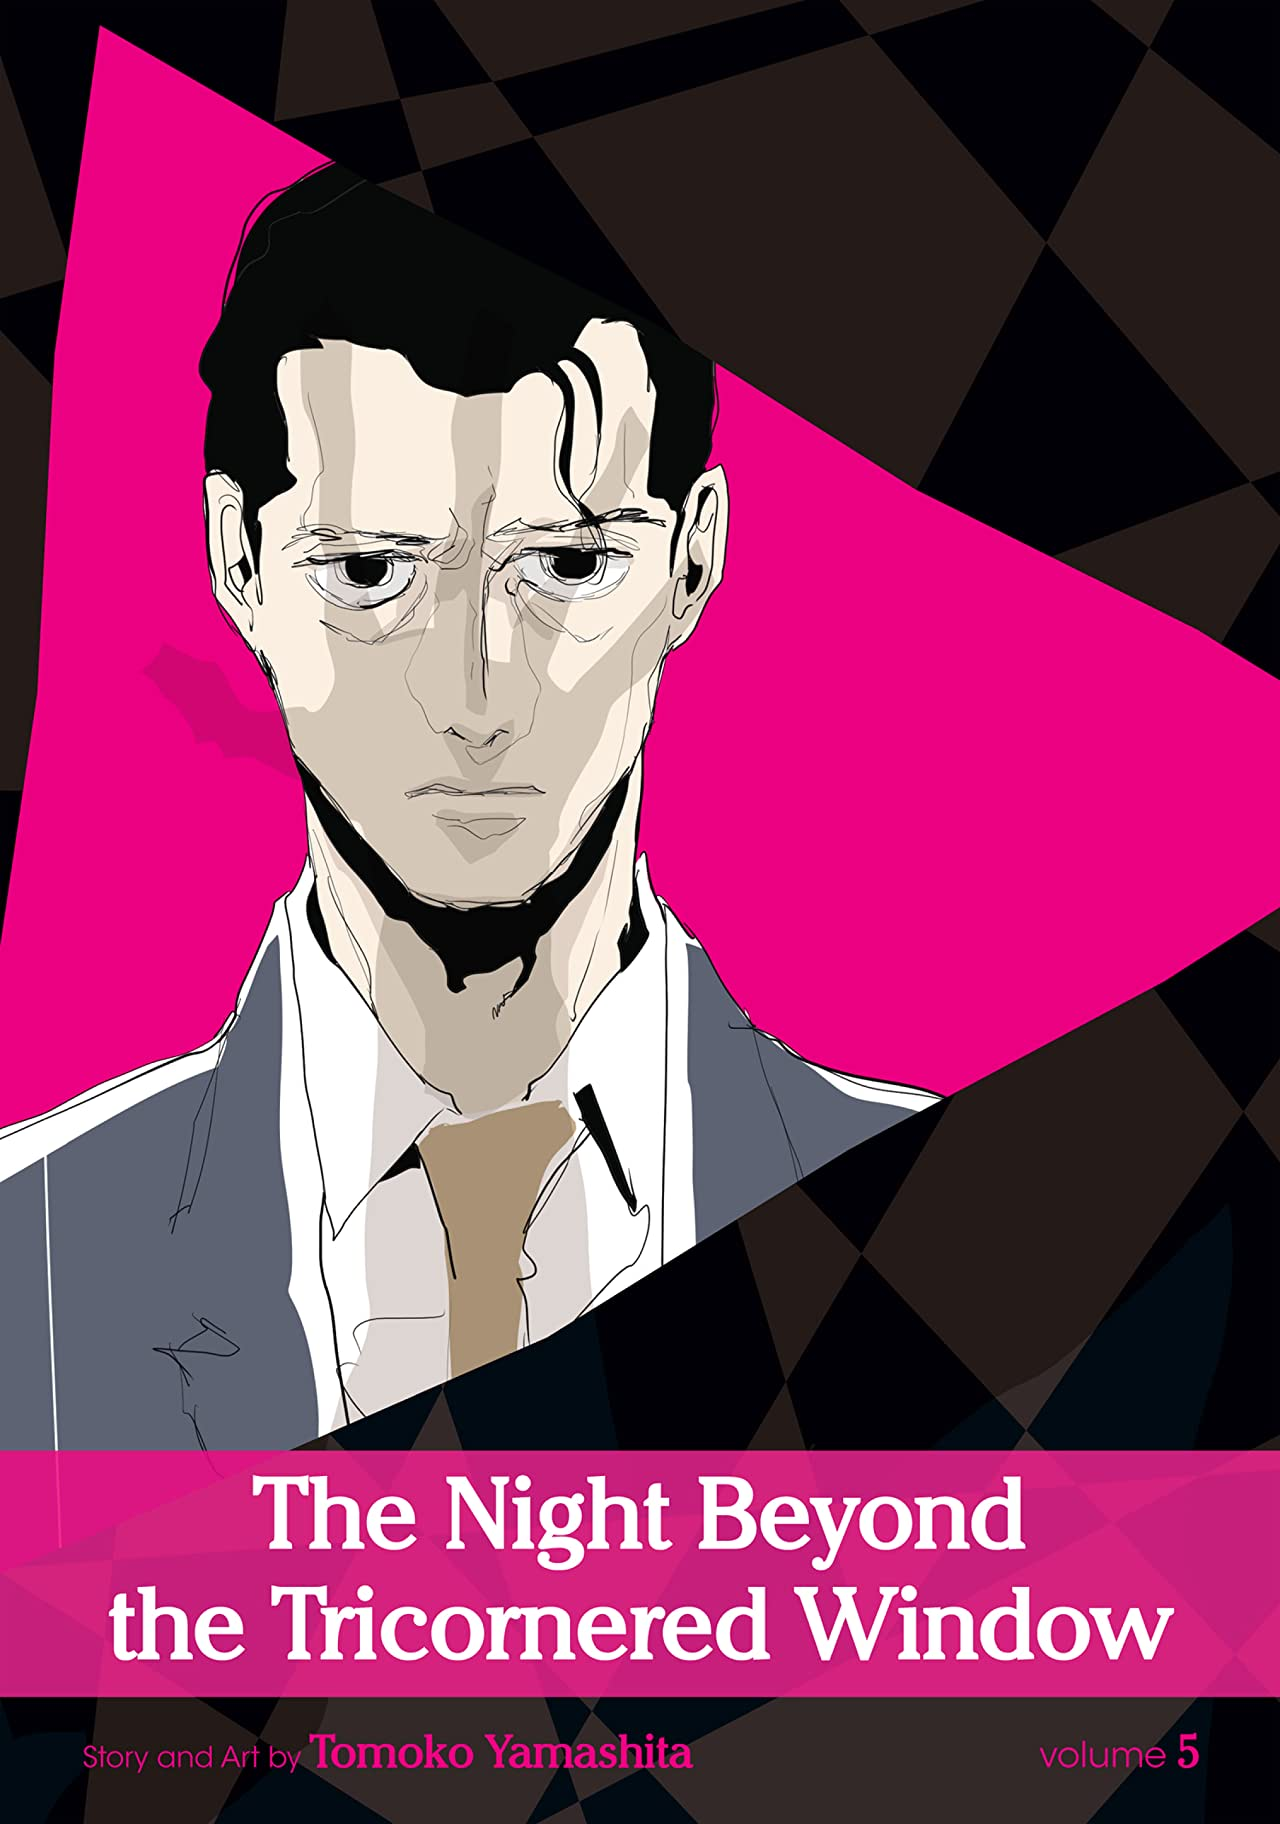 The Night Beyond the Tricornered Window Vol. 5